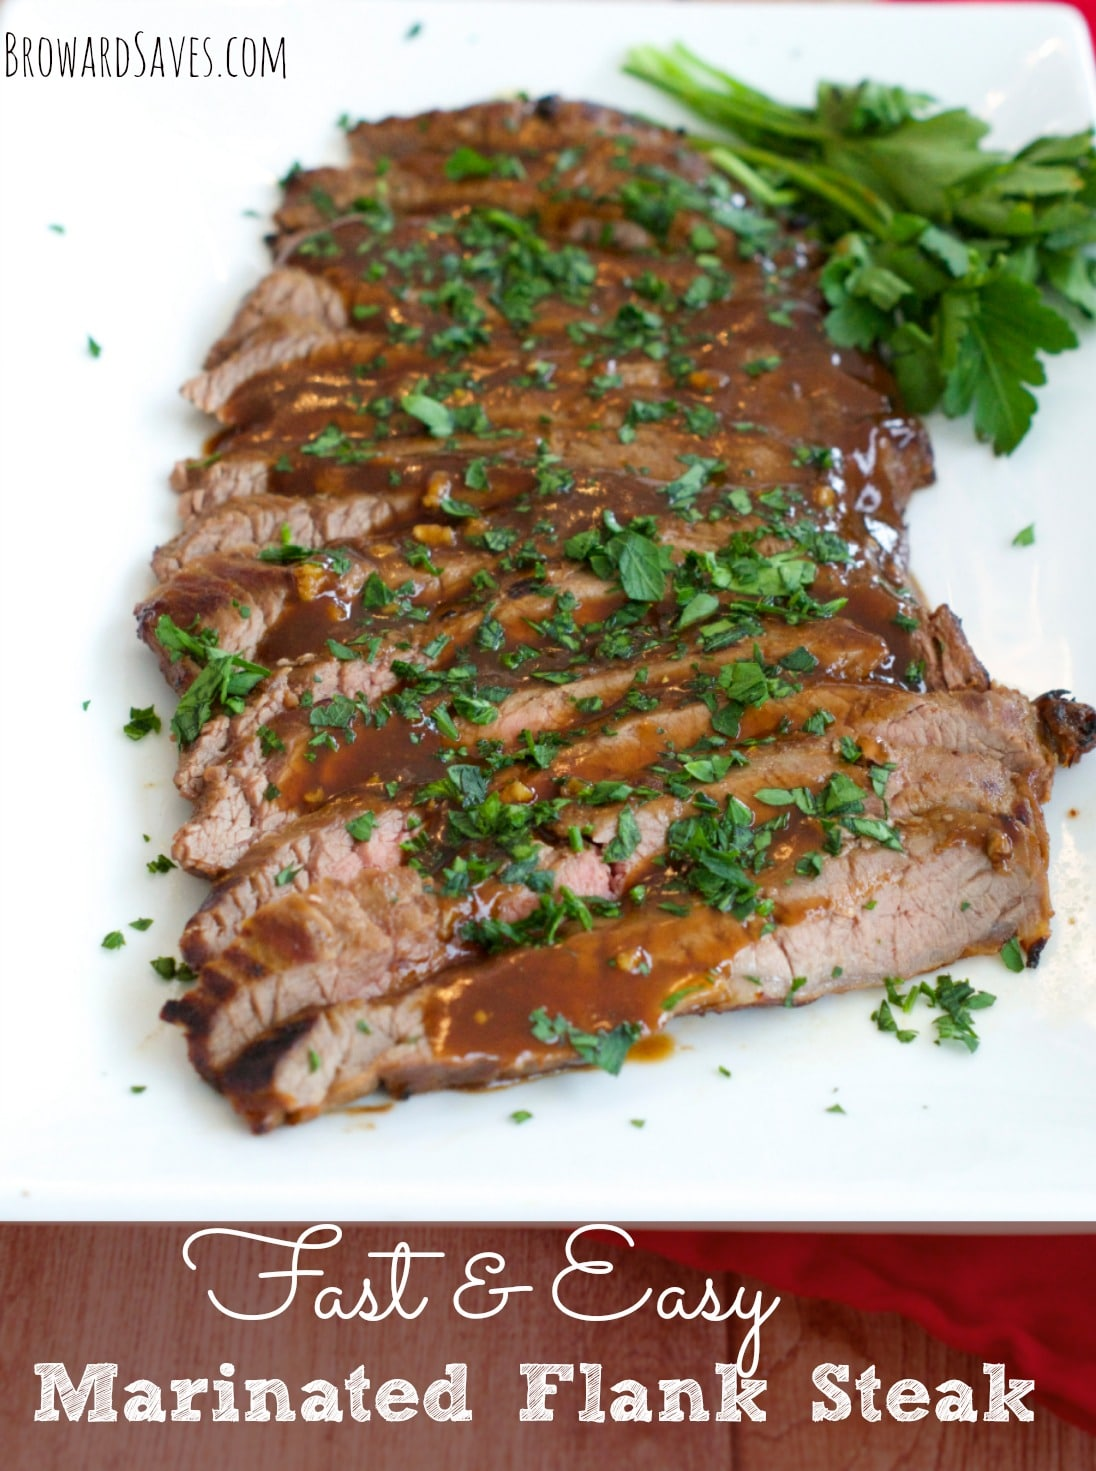 marinated-flank-steak-dinner-cover